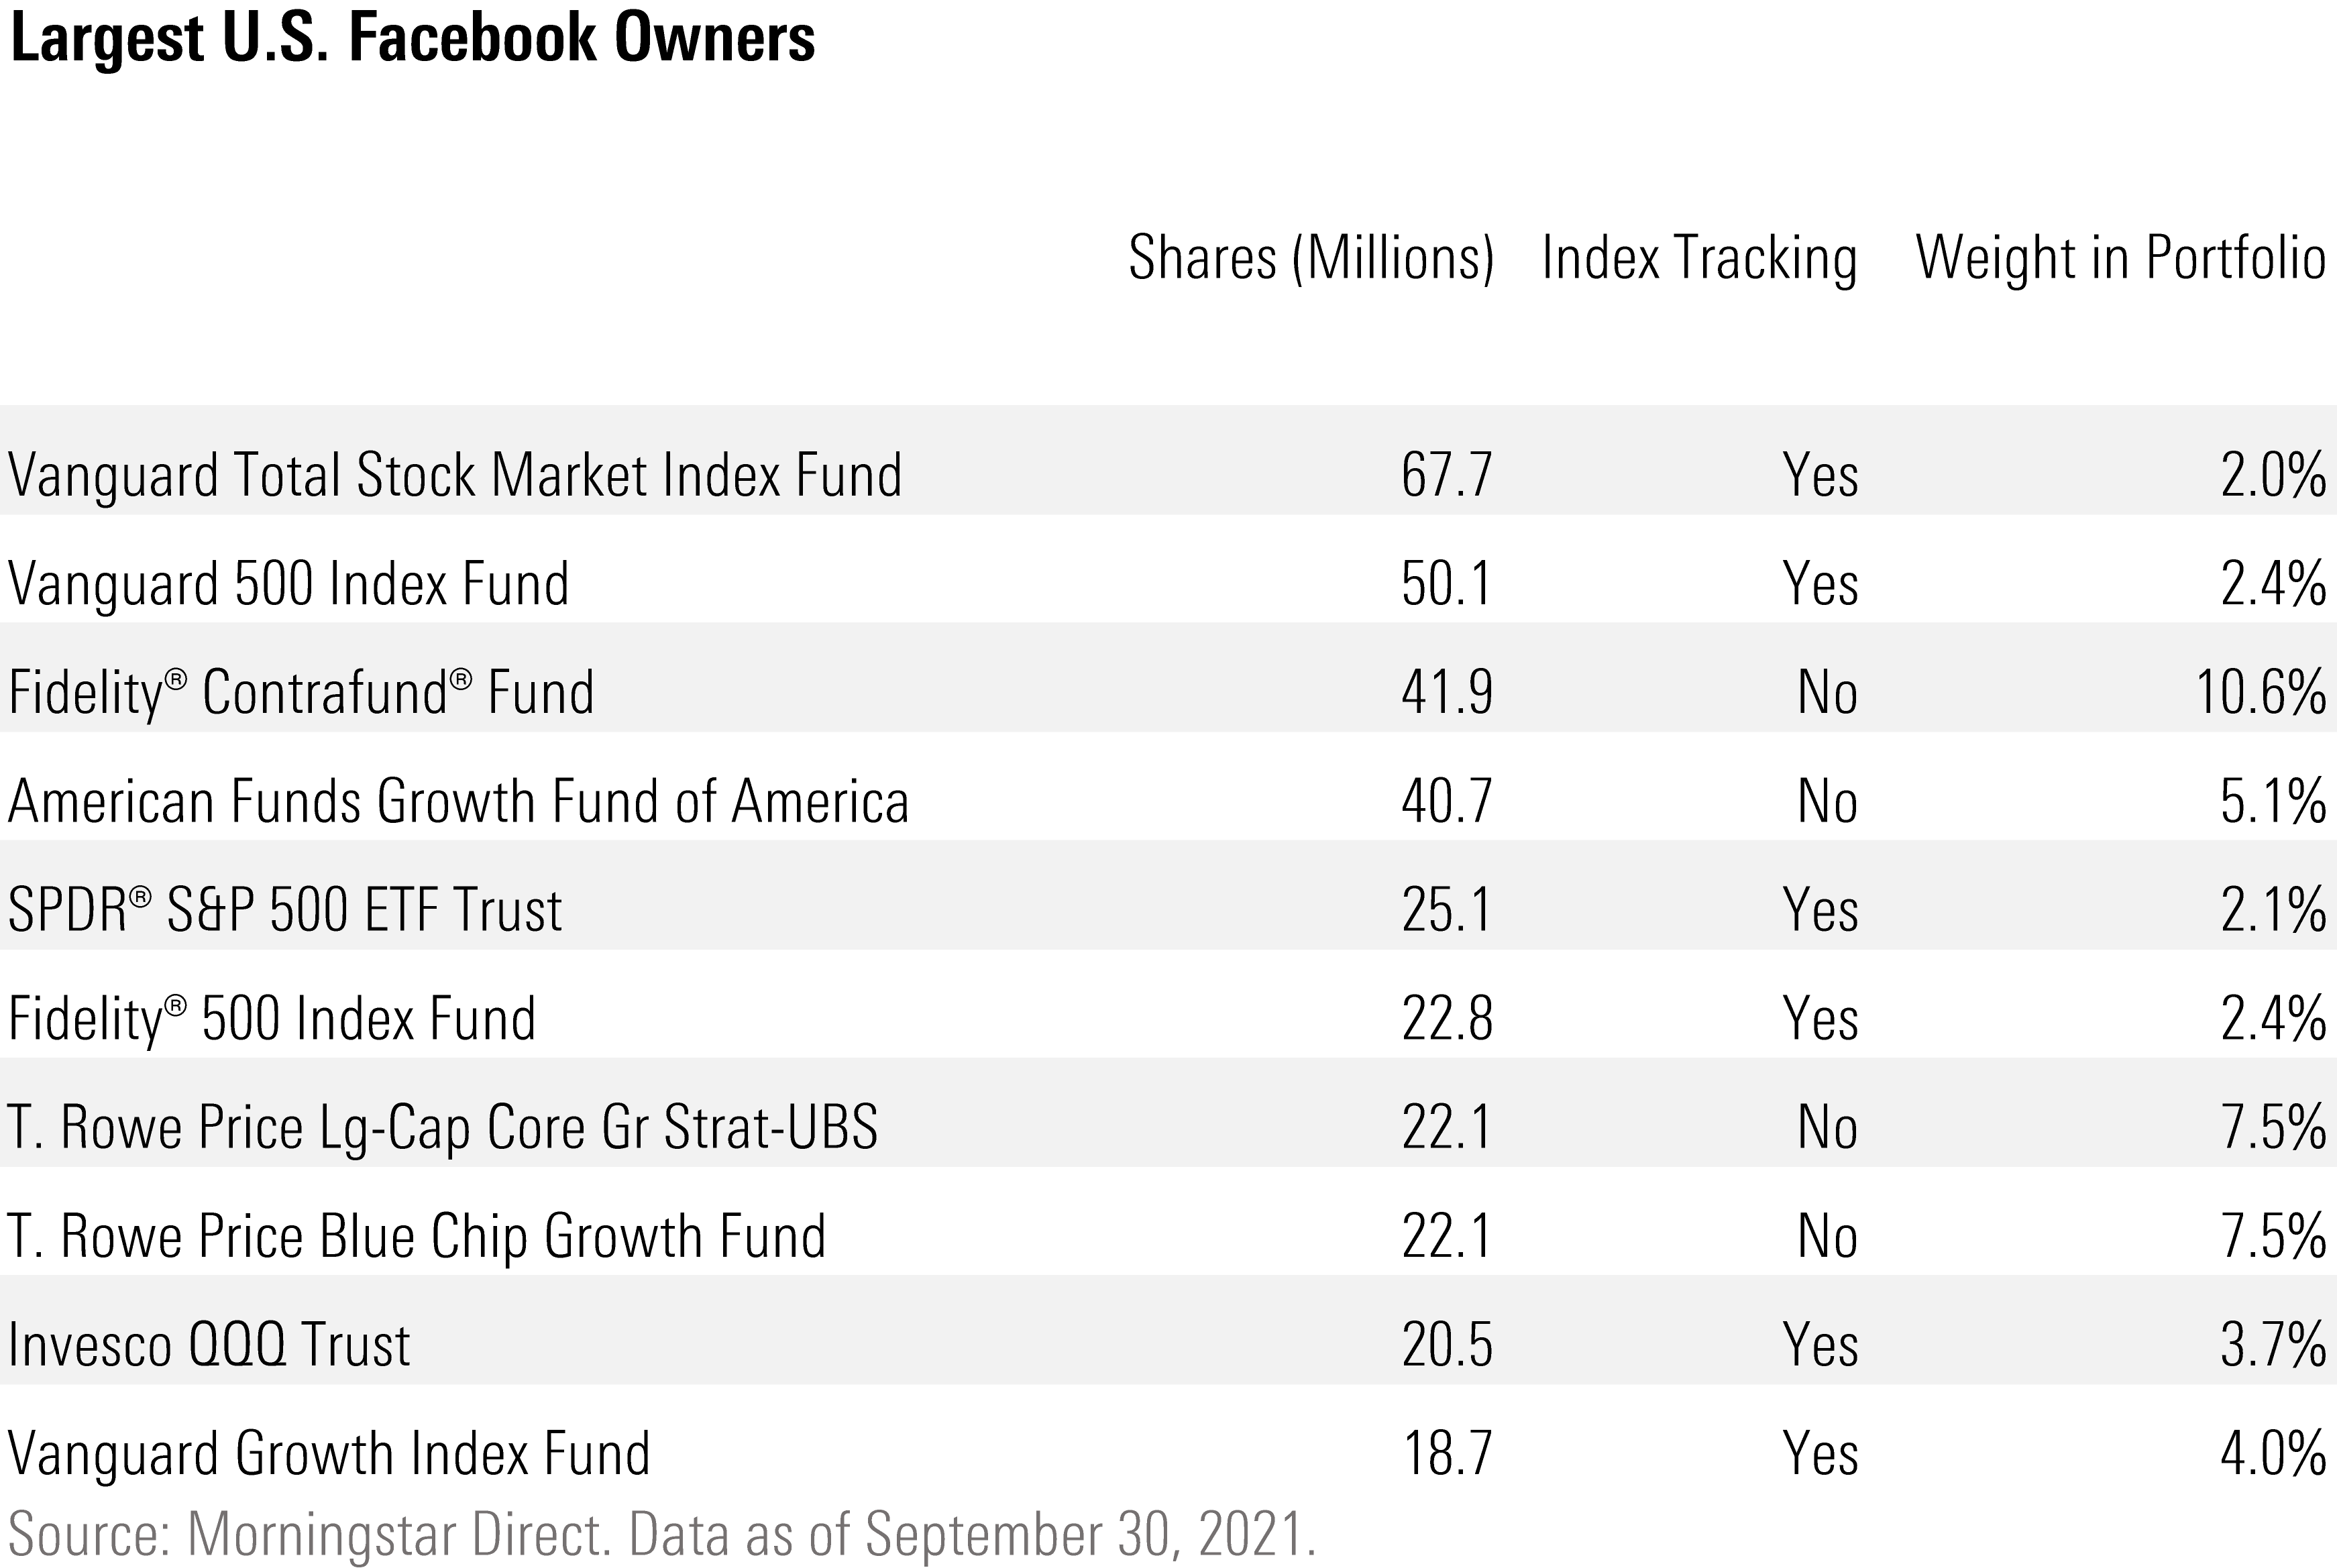 Largest US Facebook Owners